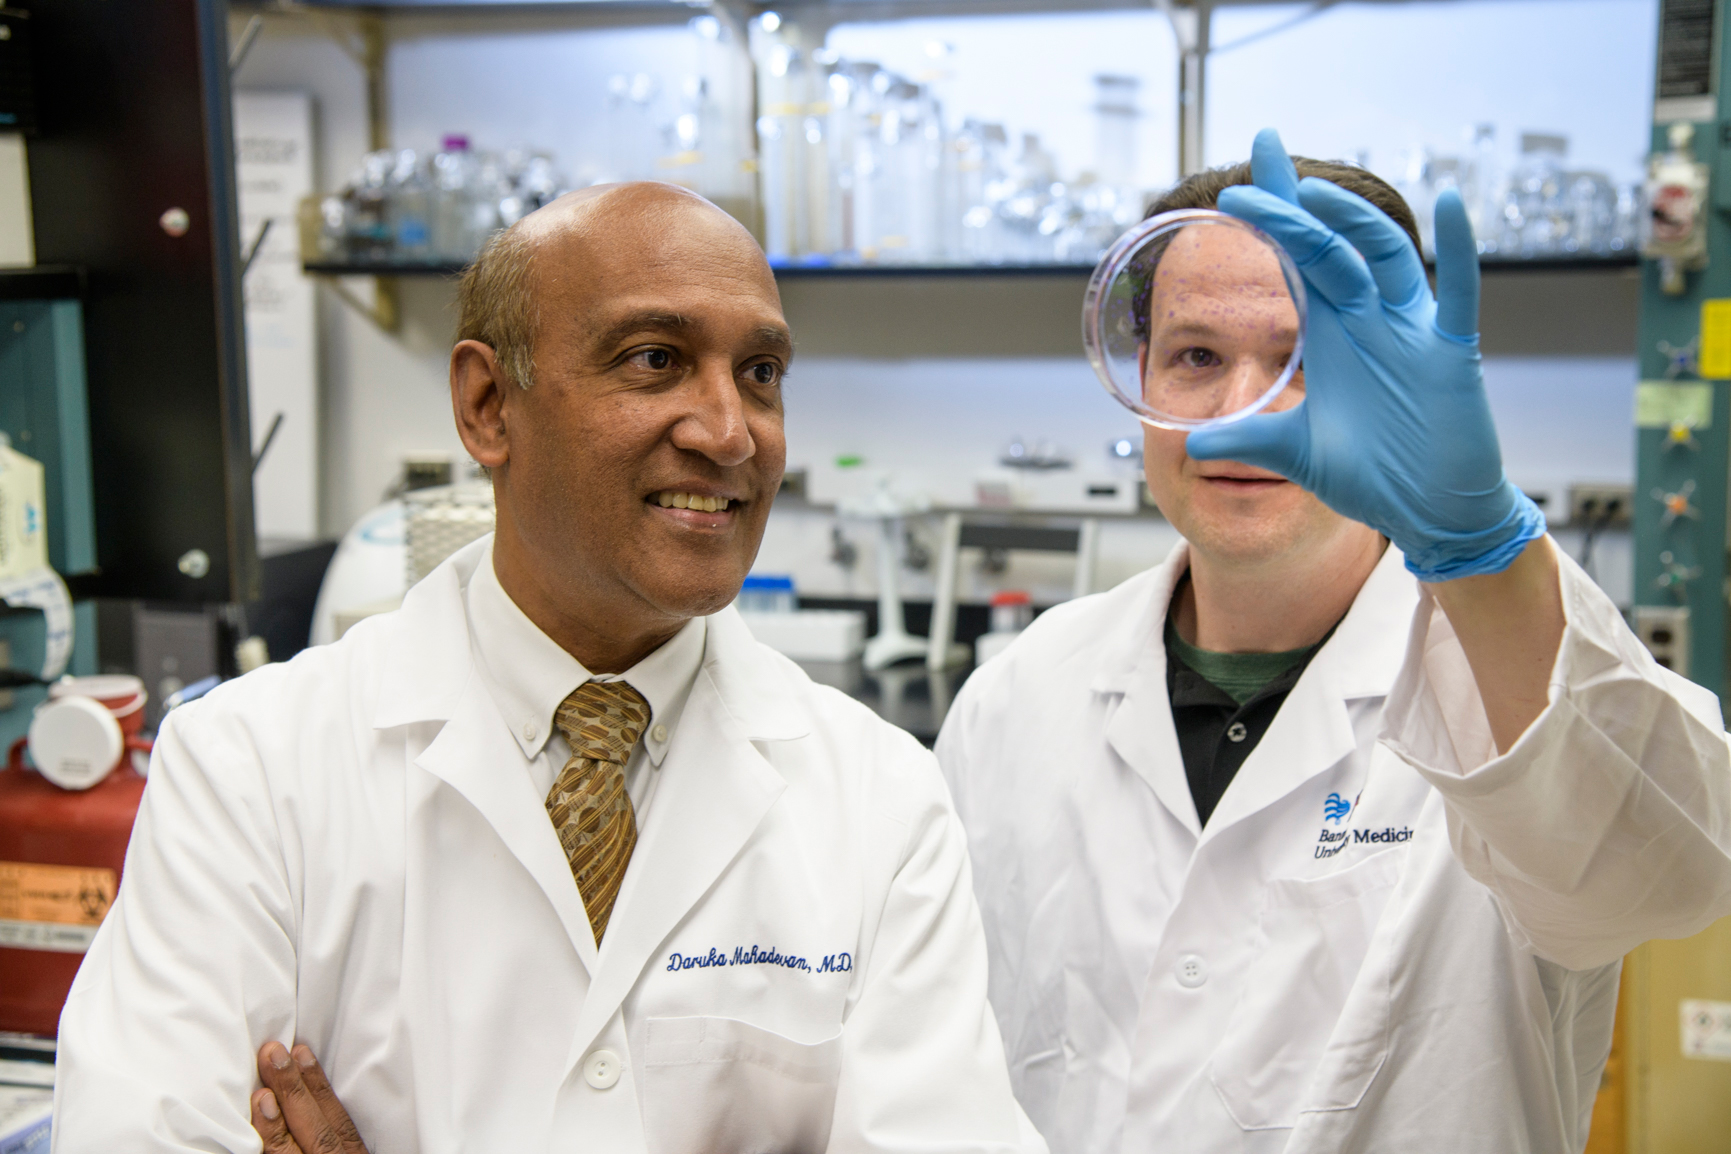 Daruka Mahadevan, MD, PhD, and Eric Weterings, PhD,  examine a petri dish in a UA Cancer Center laboratory (Kris Hanning, UAHS BioCommunications)